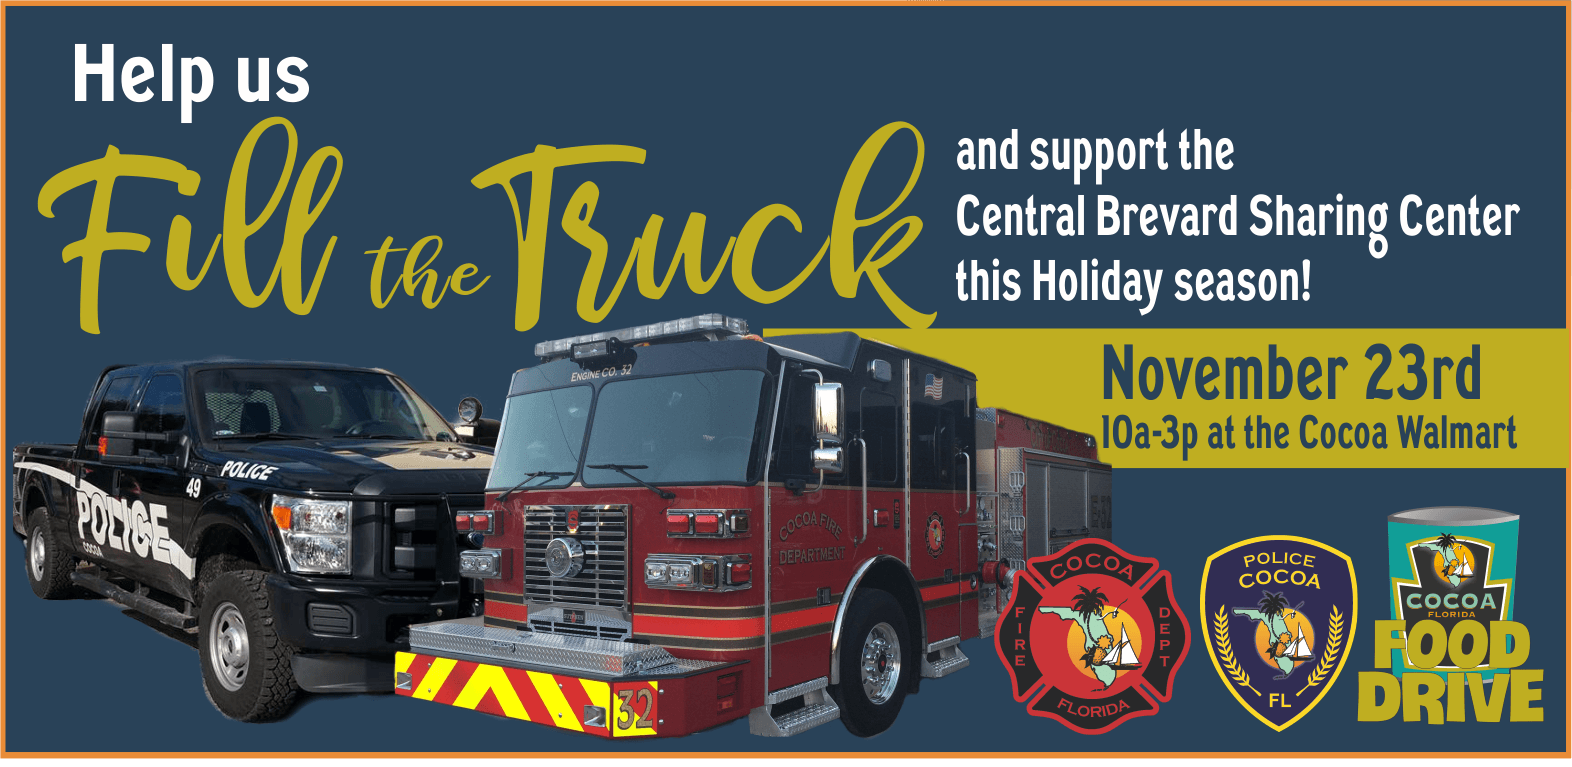 help us fill the truck and support the Central Brevard Sharing Center this holiday season. Nov 23.